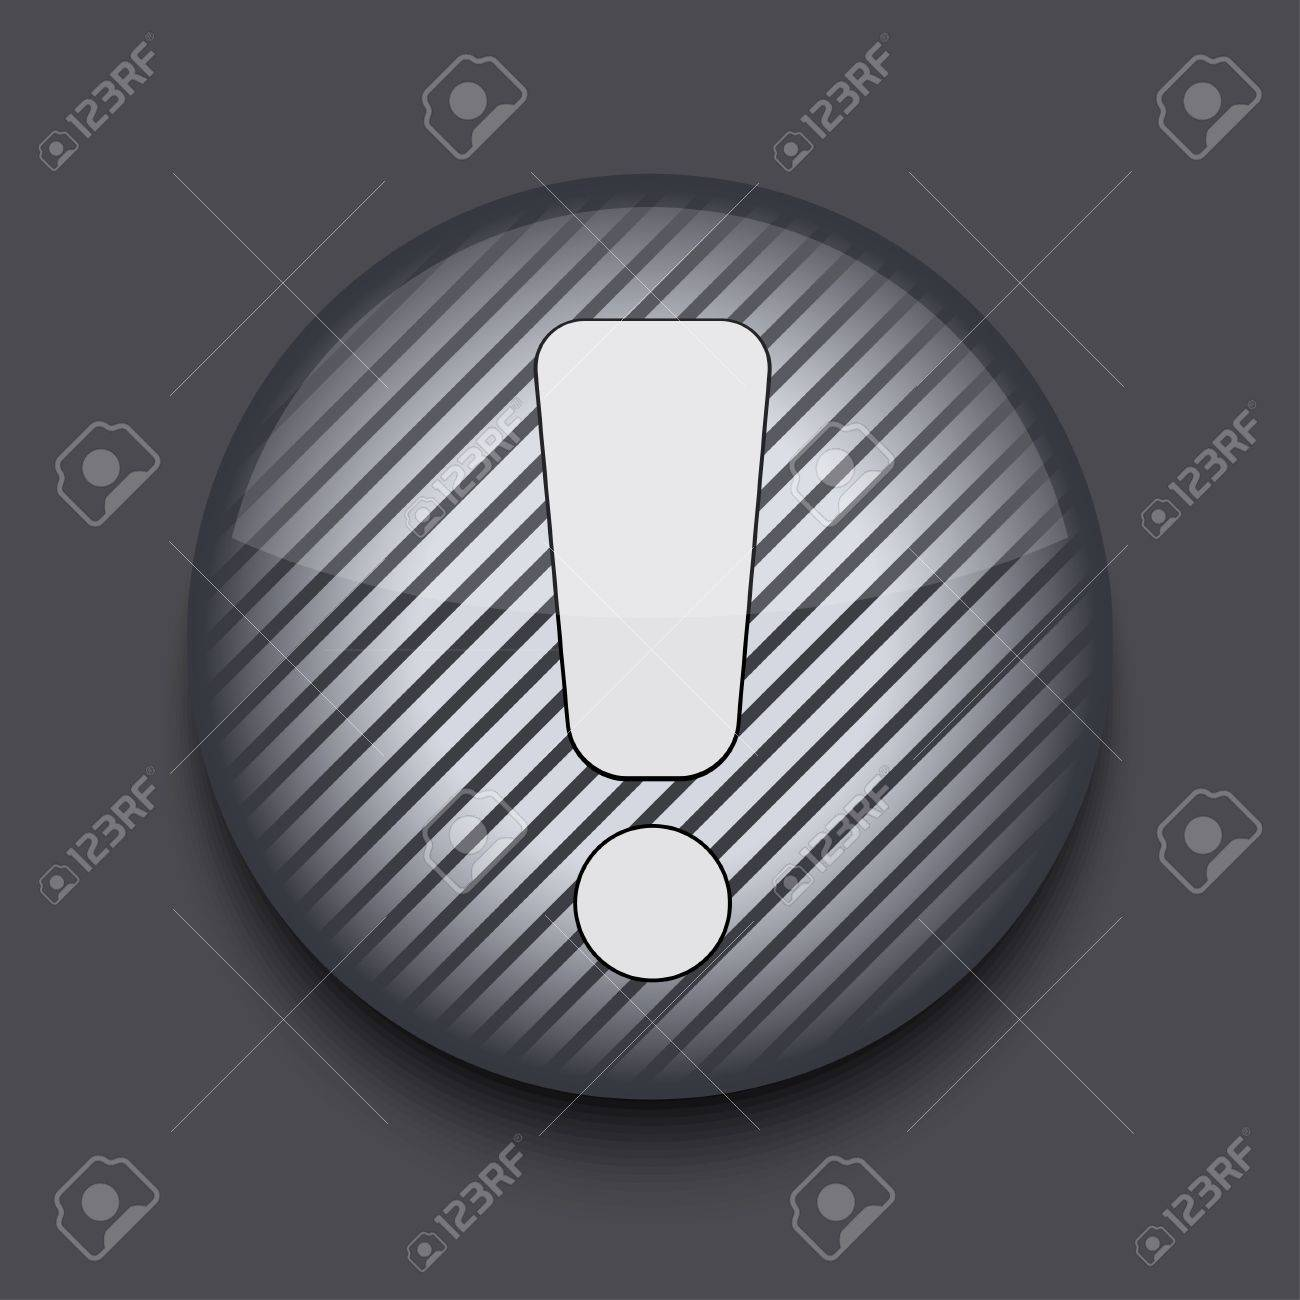 Vector app circle striped icon on gray background. Eps 10 Stock Vector - 16773433